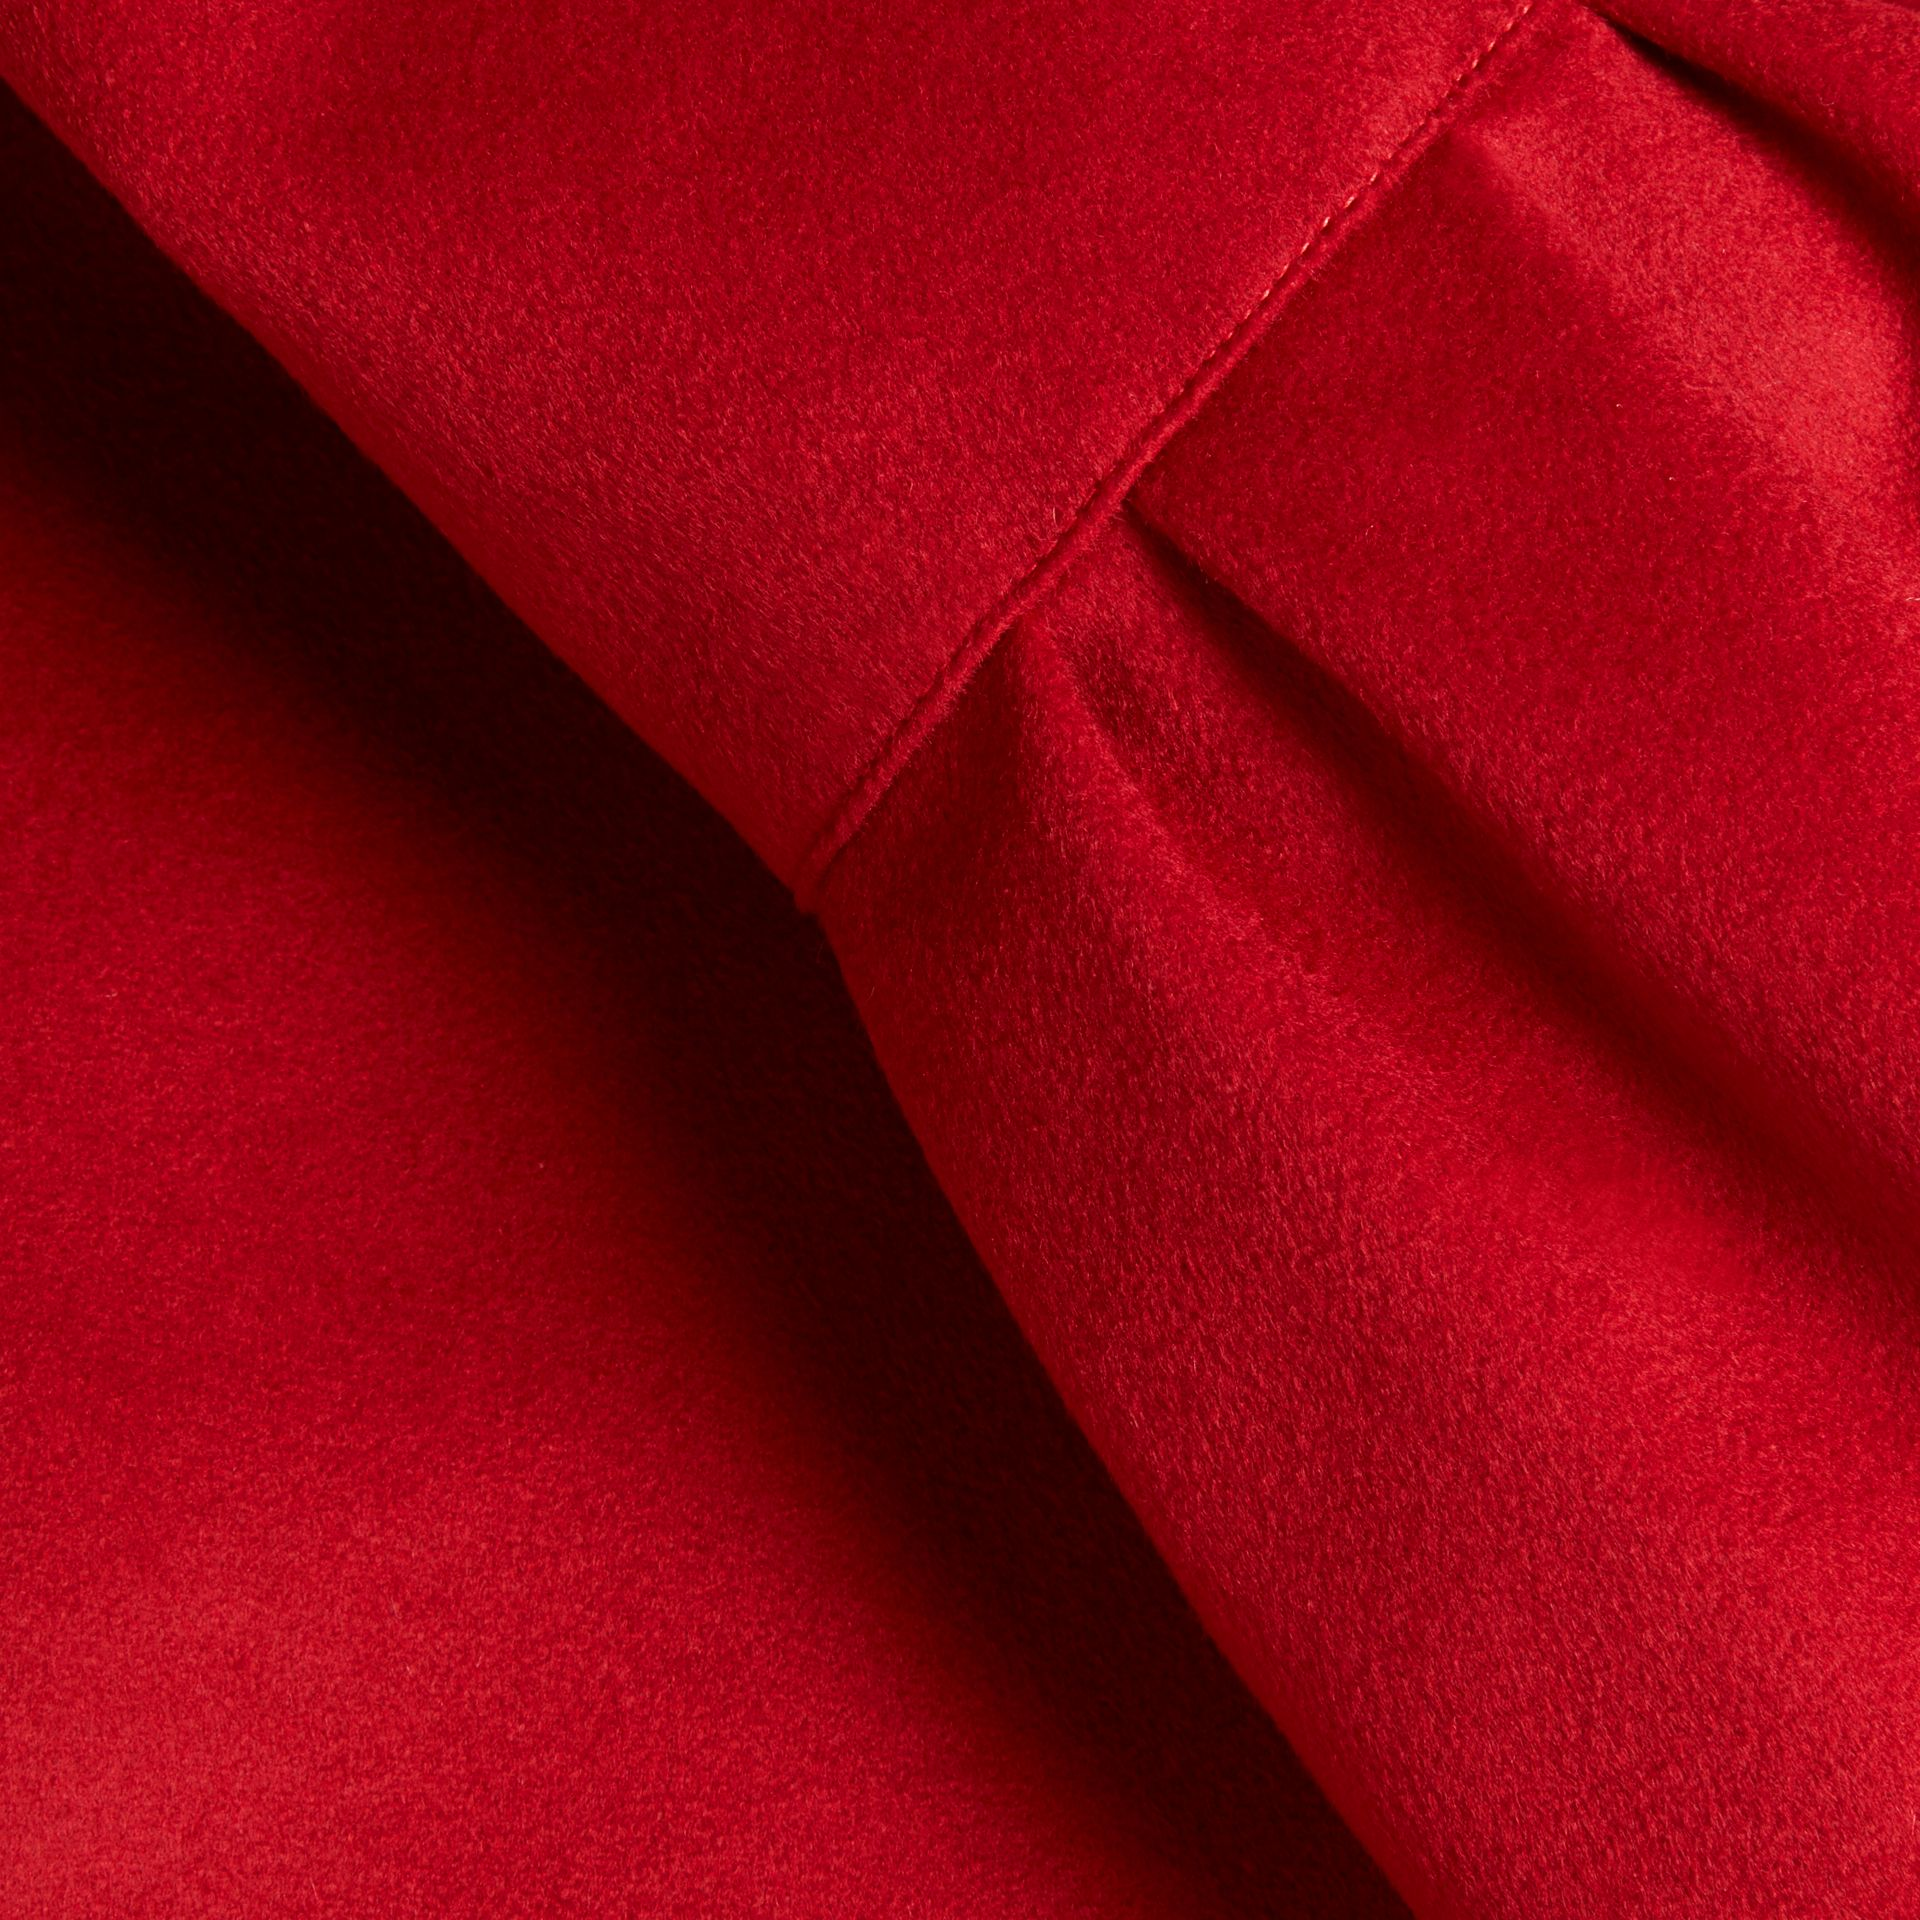 Parade red Tailored Wool Cashmere Coat with Bell Sleeves Parade - gallery image 2